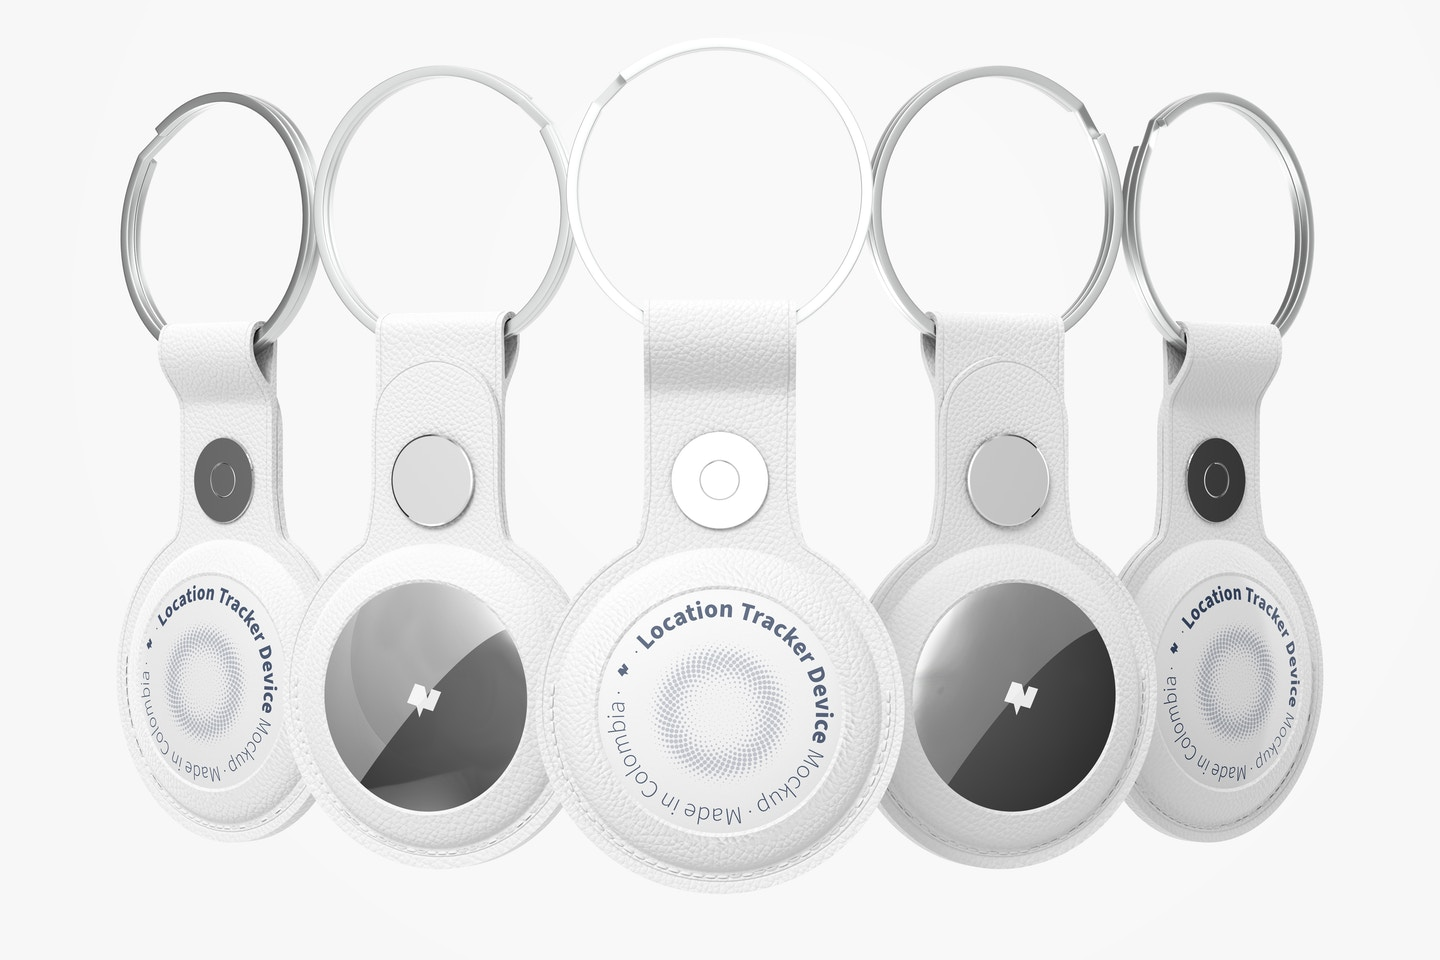 AirTags with Keychain Set Mockup